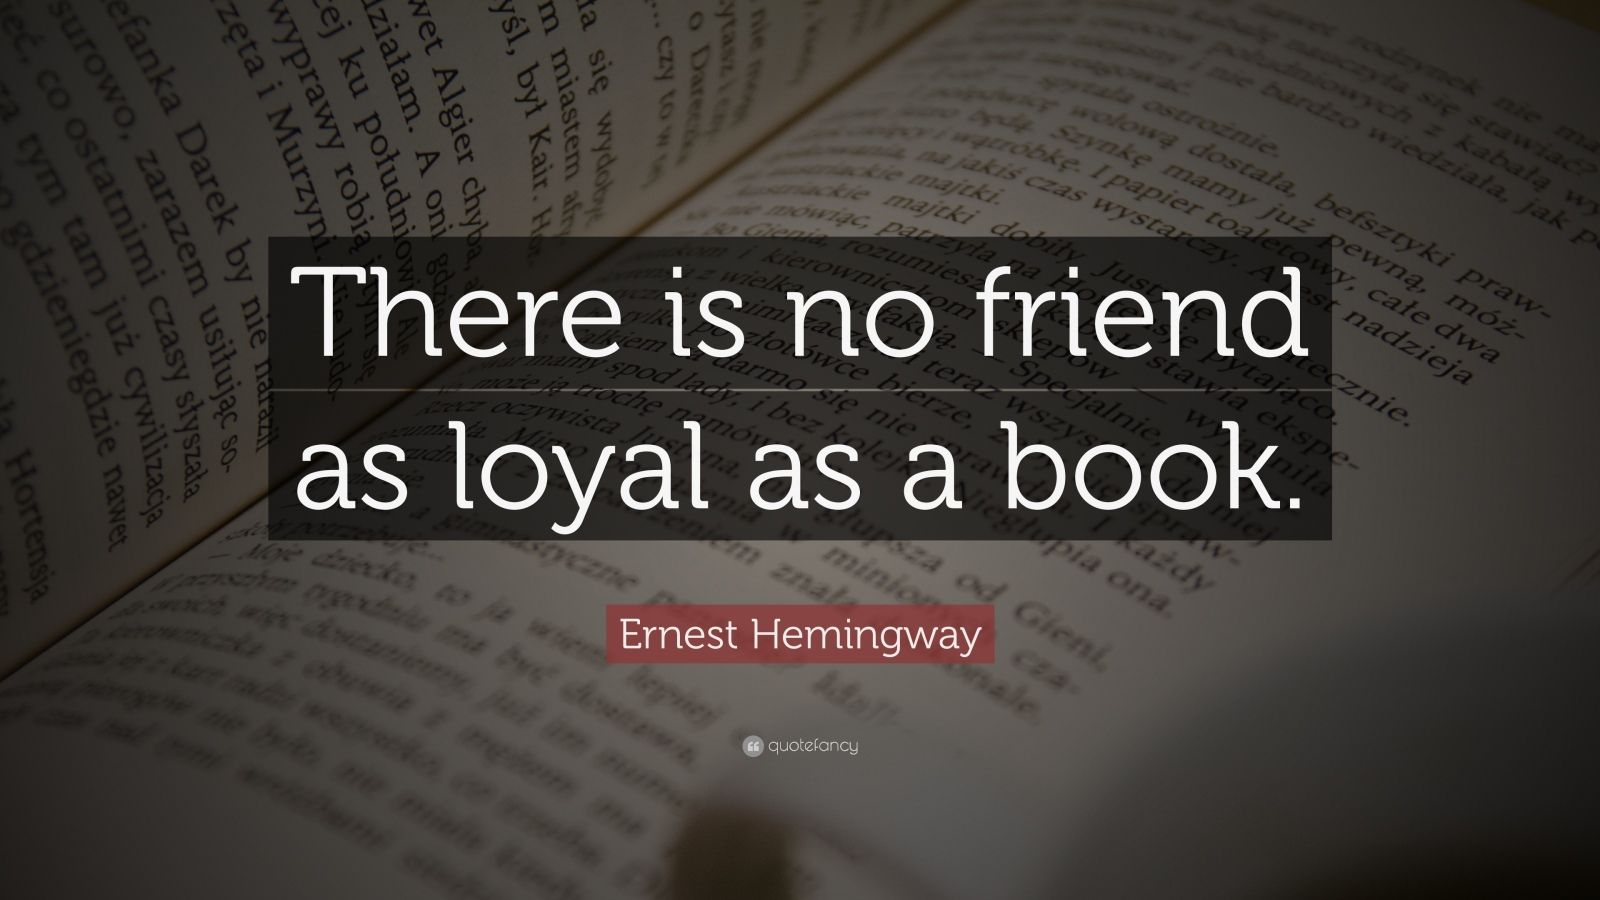 Quotes Quotes About Books And Reading 22 Wallpapers  Quotefancy